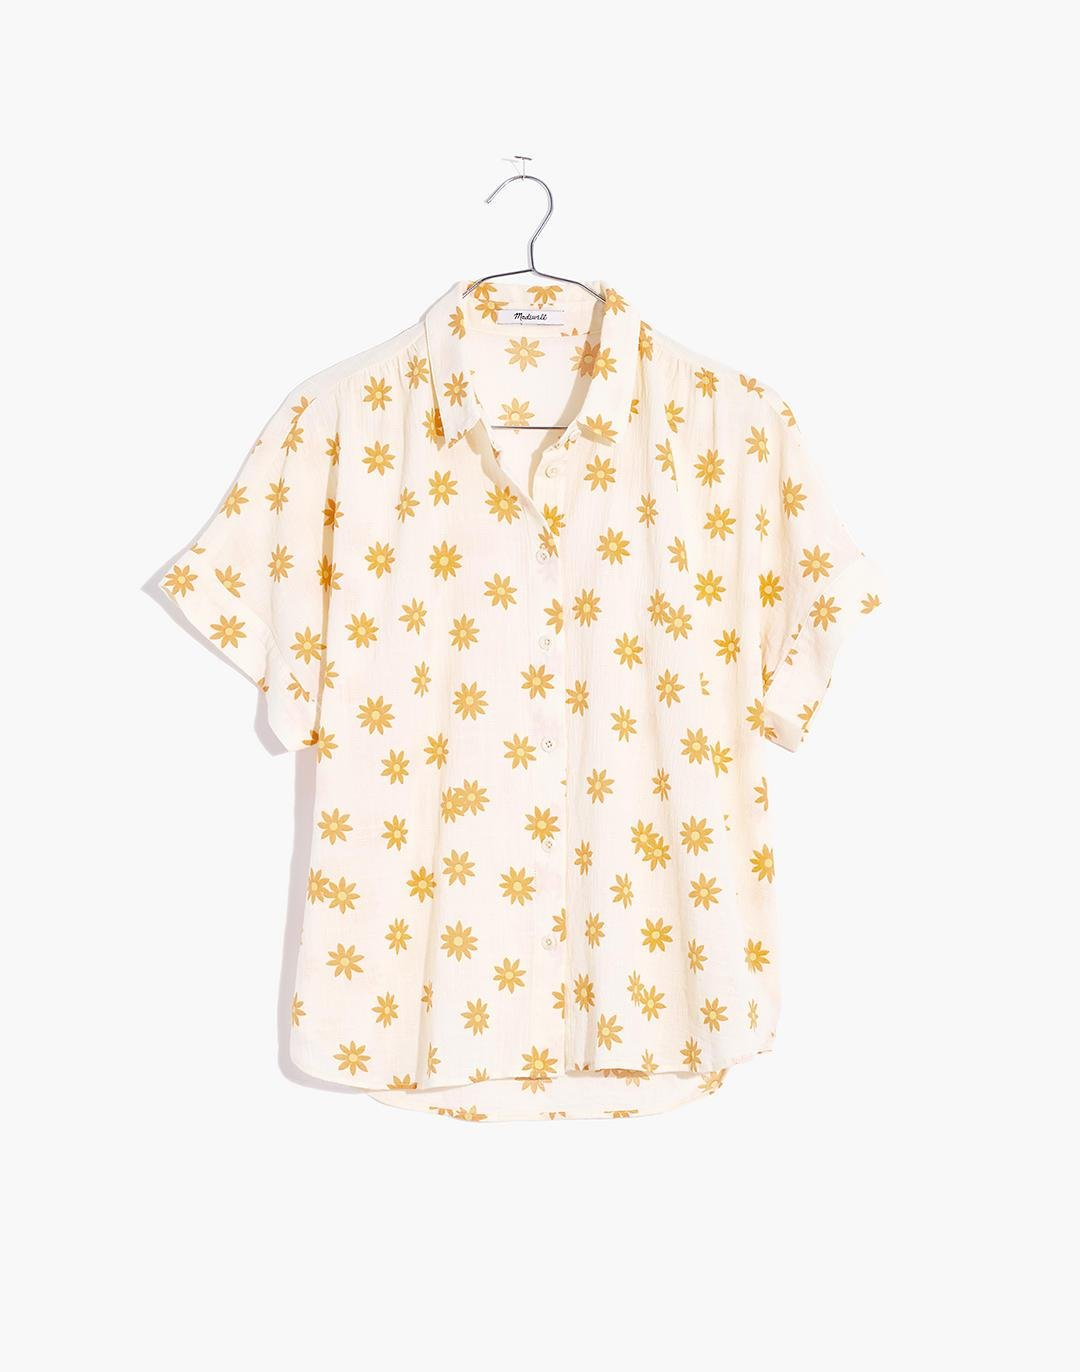 Hilltop Shirt in Daisy Groove 4